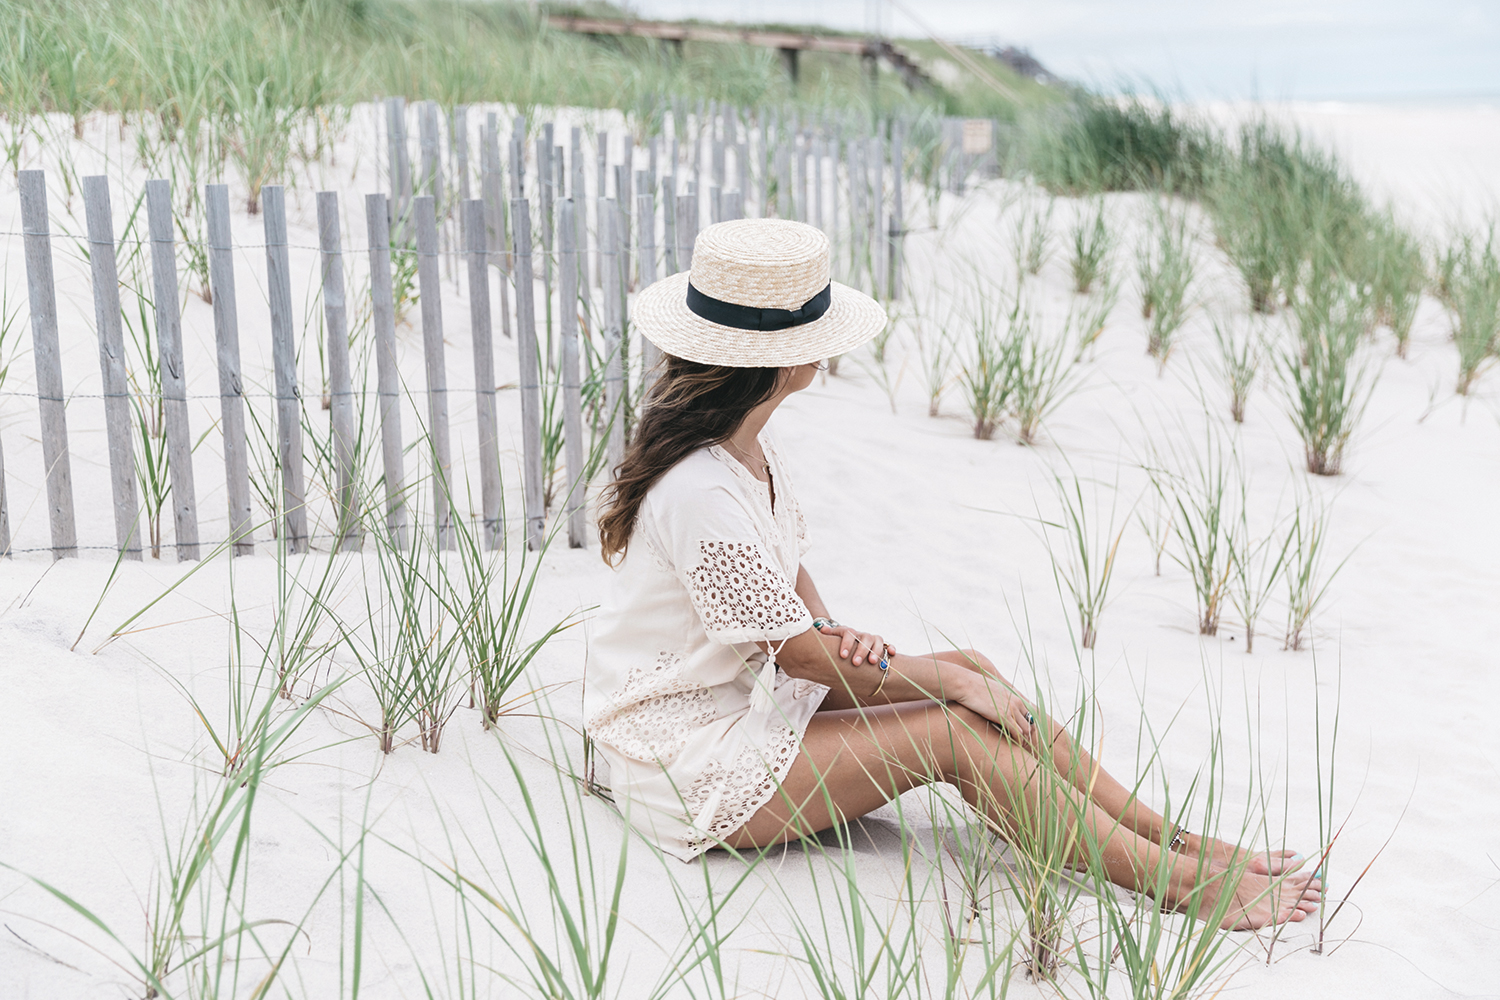 Revolve_in_The_Hamptons-Revolve_Clothing-Collage_Vintage-Cream_Dress-Tularosa-Canotier-29